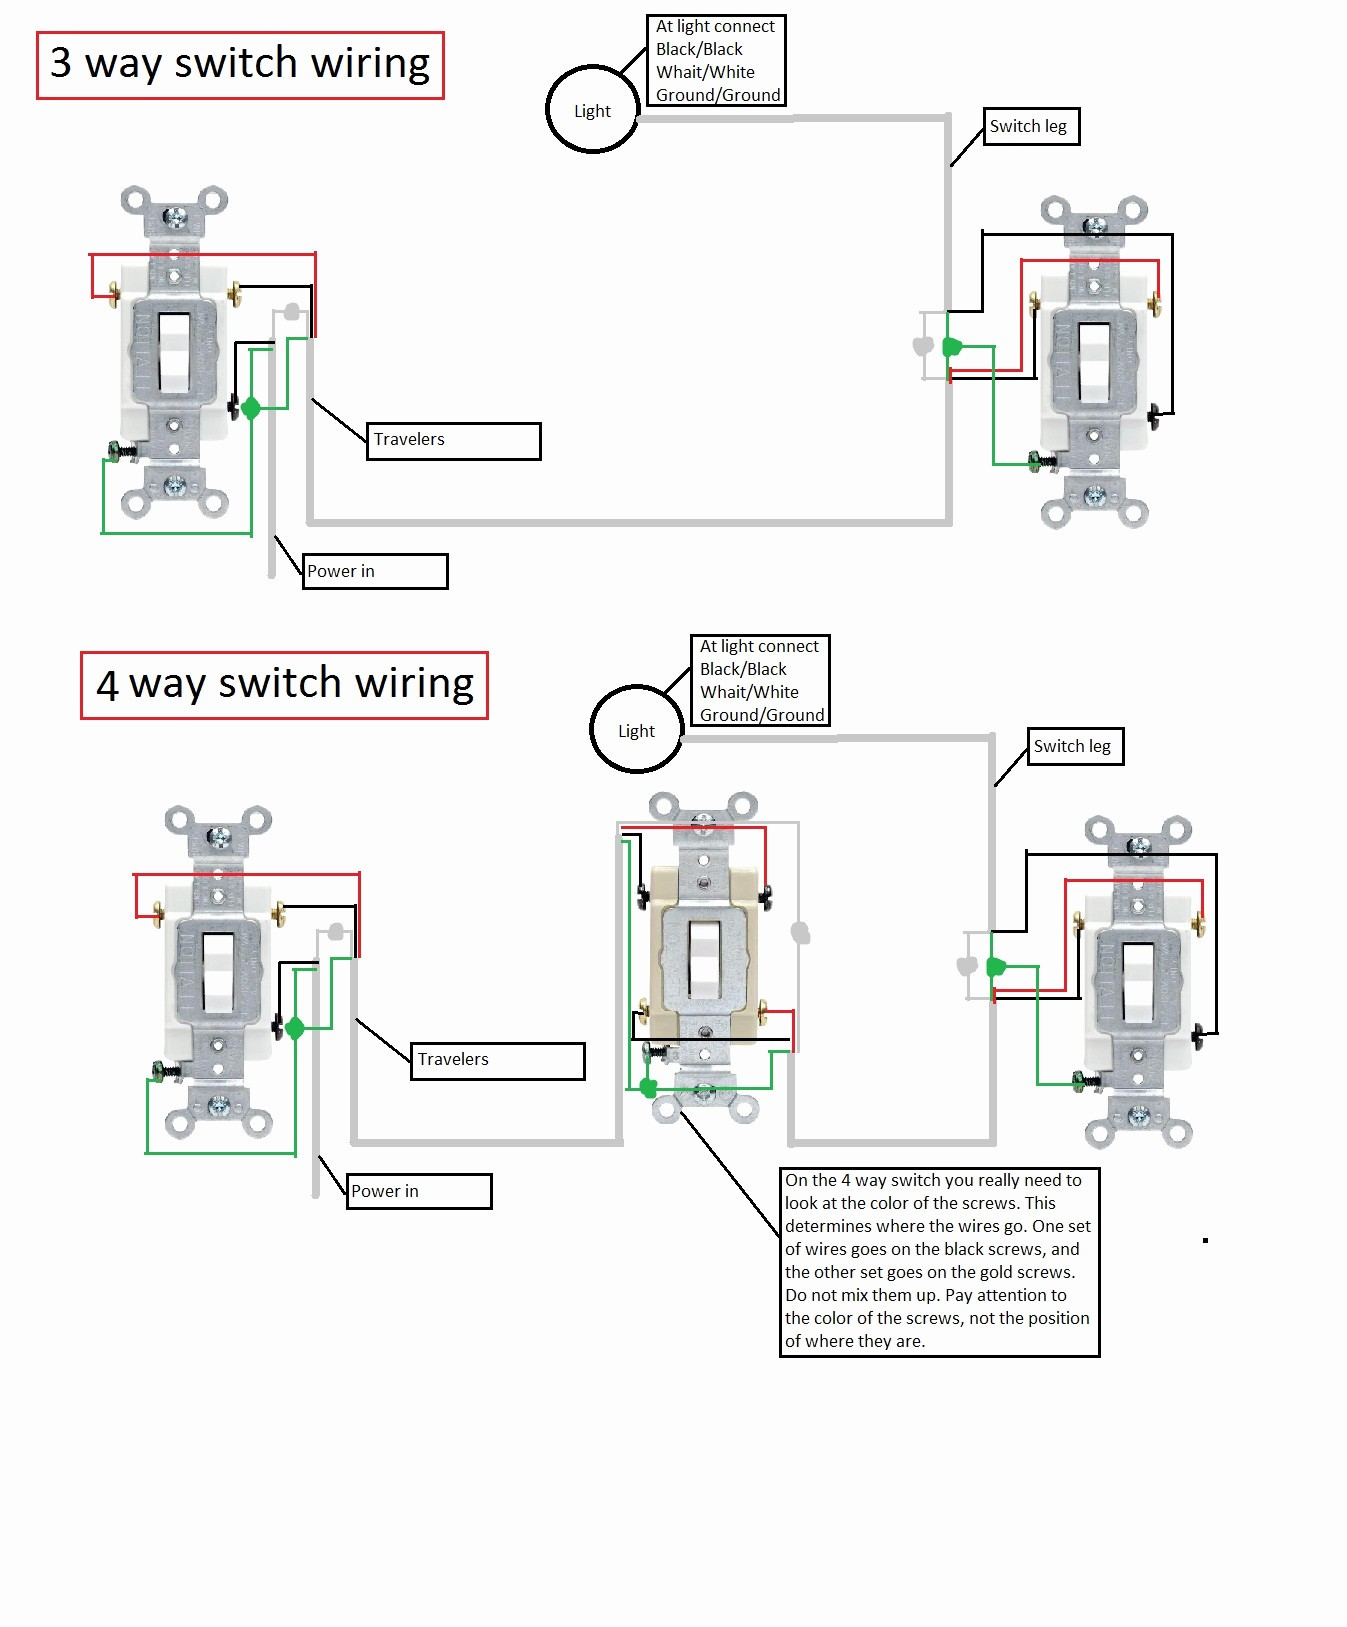 wiring how to wire a 3 way light switch amazing 3 way fan light rh workercompensation co 5- Way Switch Wiring Diagram 4-Way Switch Wiring Examples